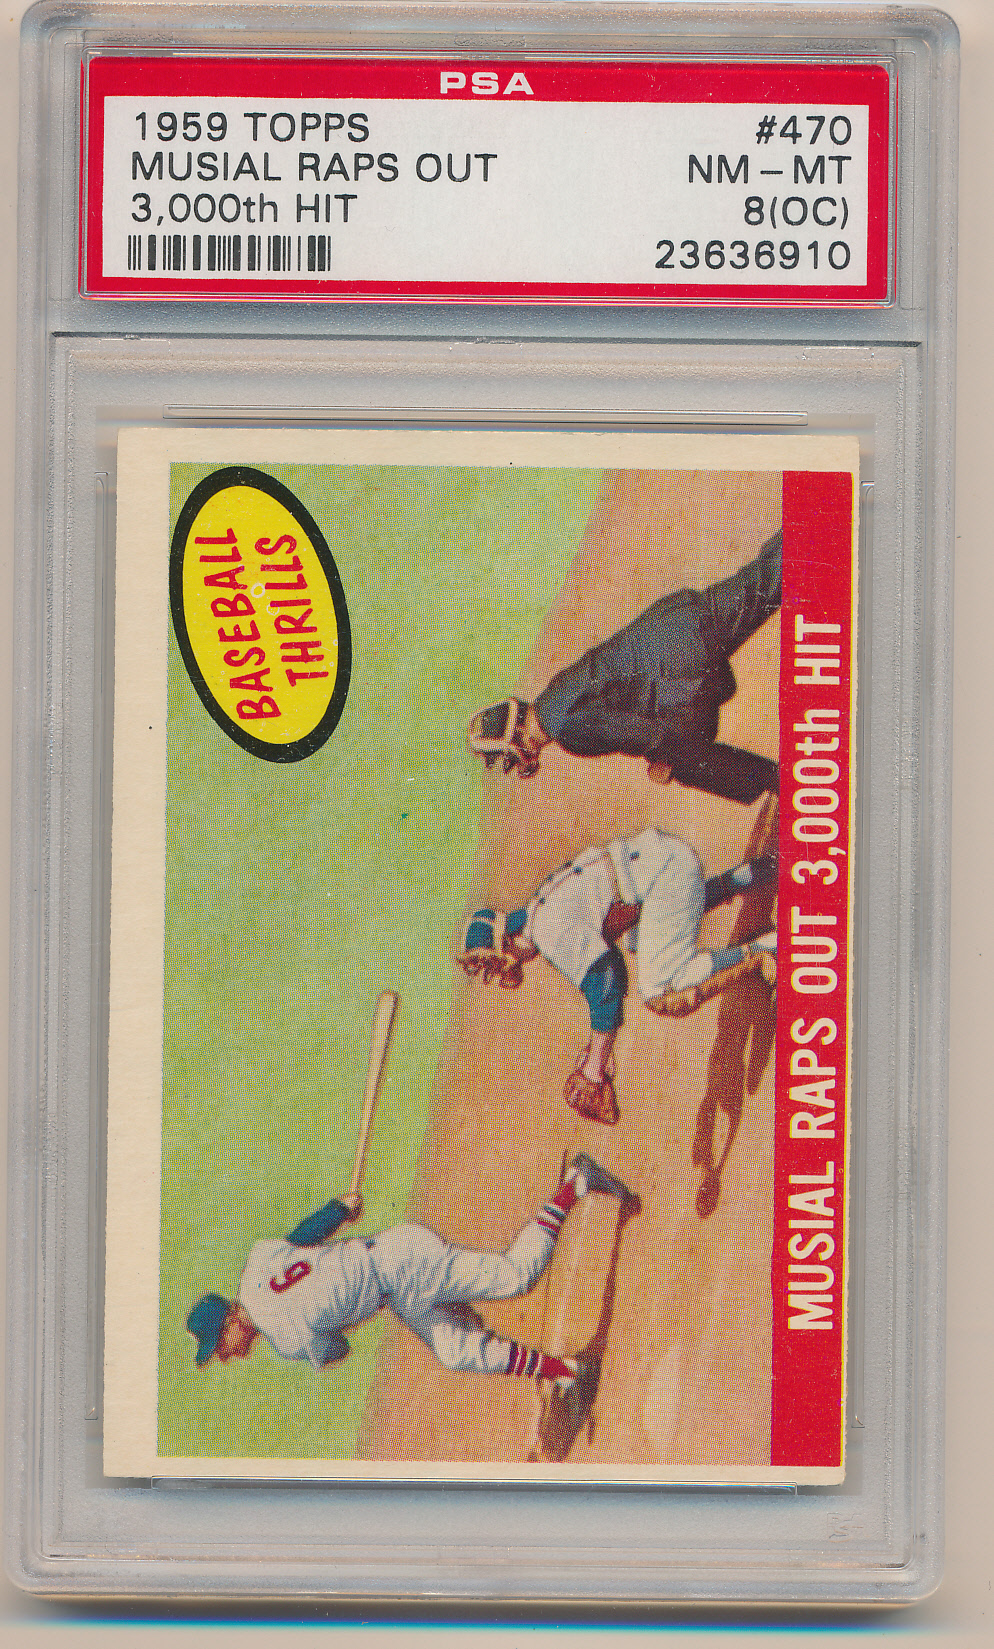 1959 Topps #470 Musial Raps Out 3,000th Hit PSA 8 (OC) NM-MT Z27056